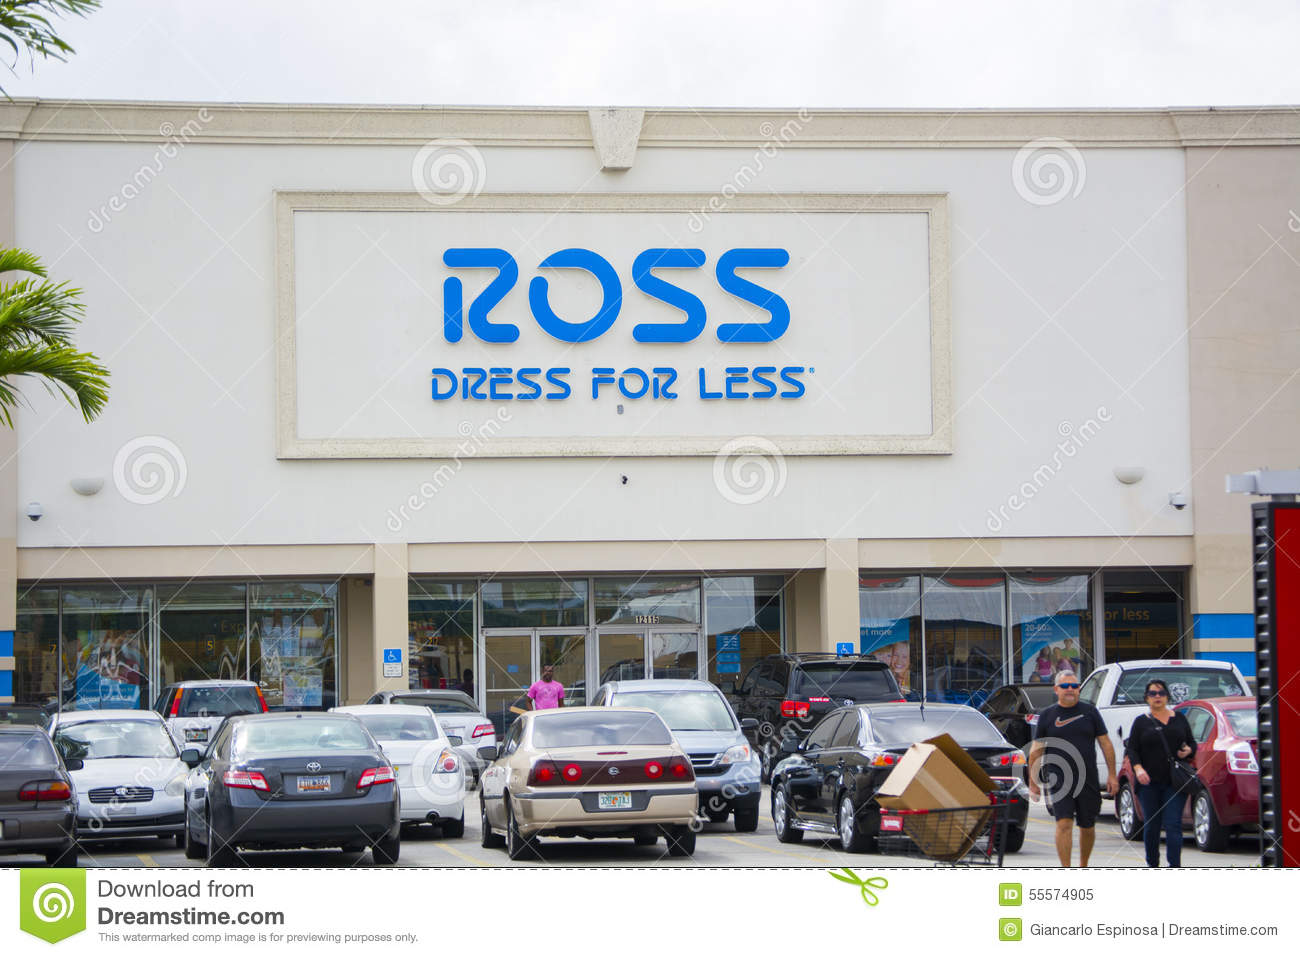 bc052b447b5 Outside view Picture of Ross store in Miami